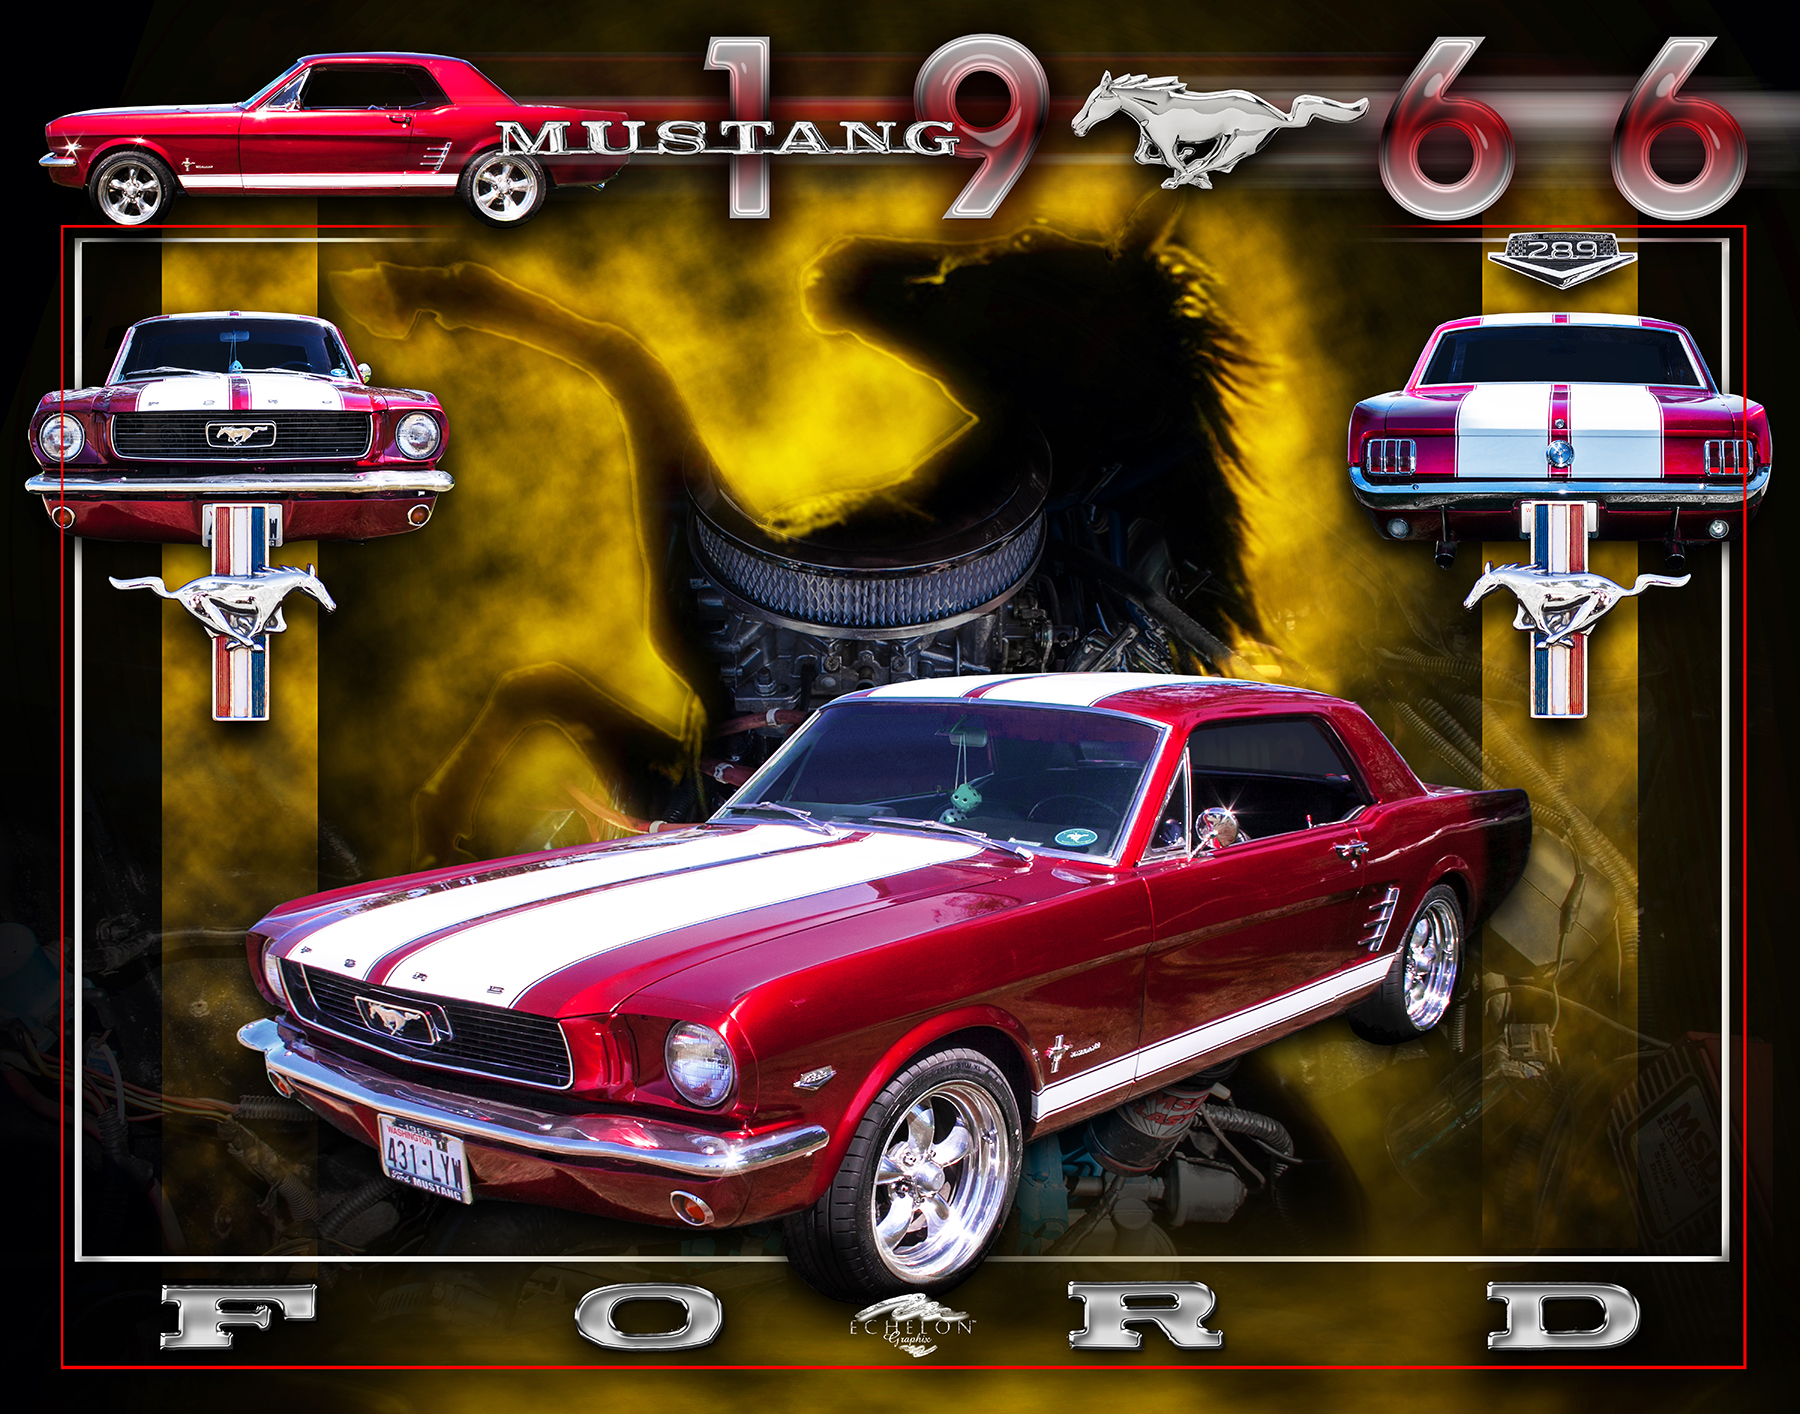 1966 Mustang Autographix Montage